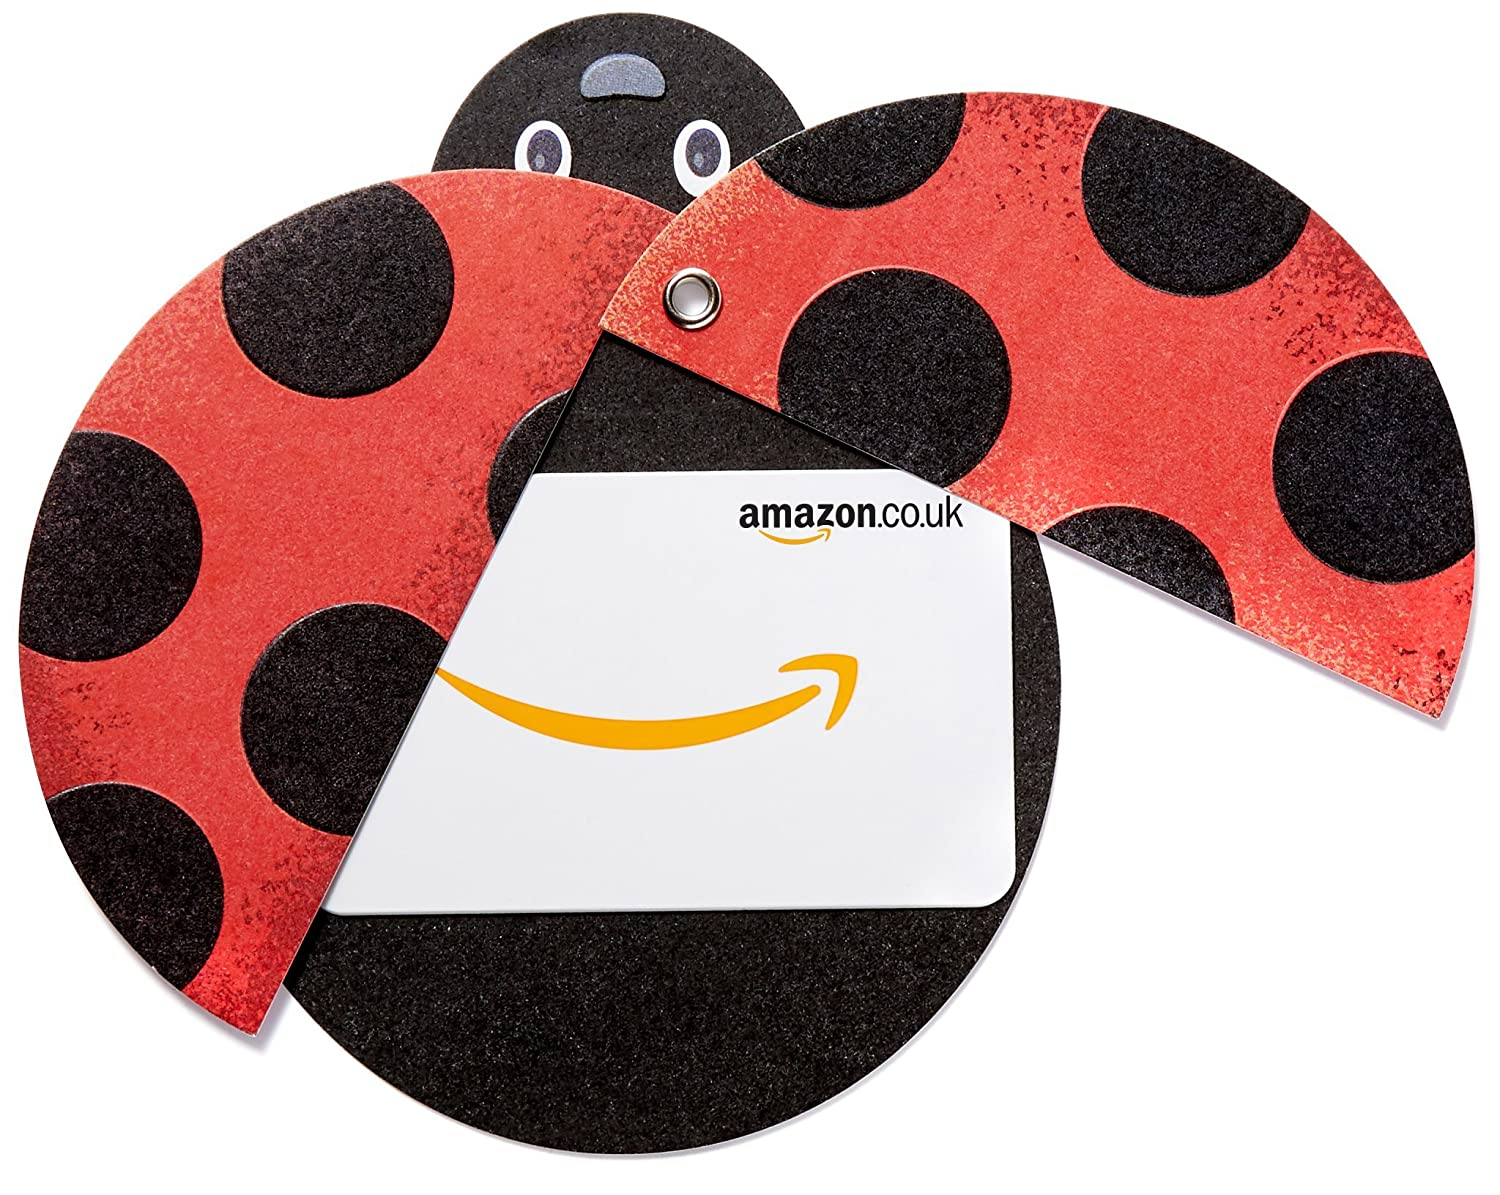 Amazon.co.uk Gift Card in a Ladybird Sleeve Amazon EU S.à.r.l. Fixed